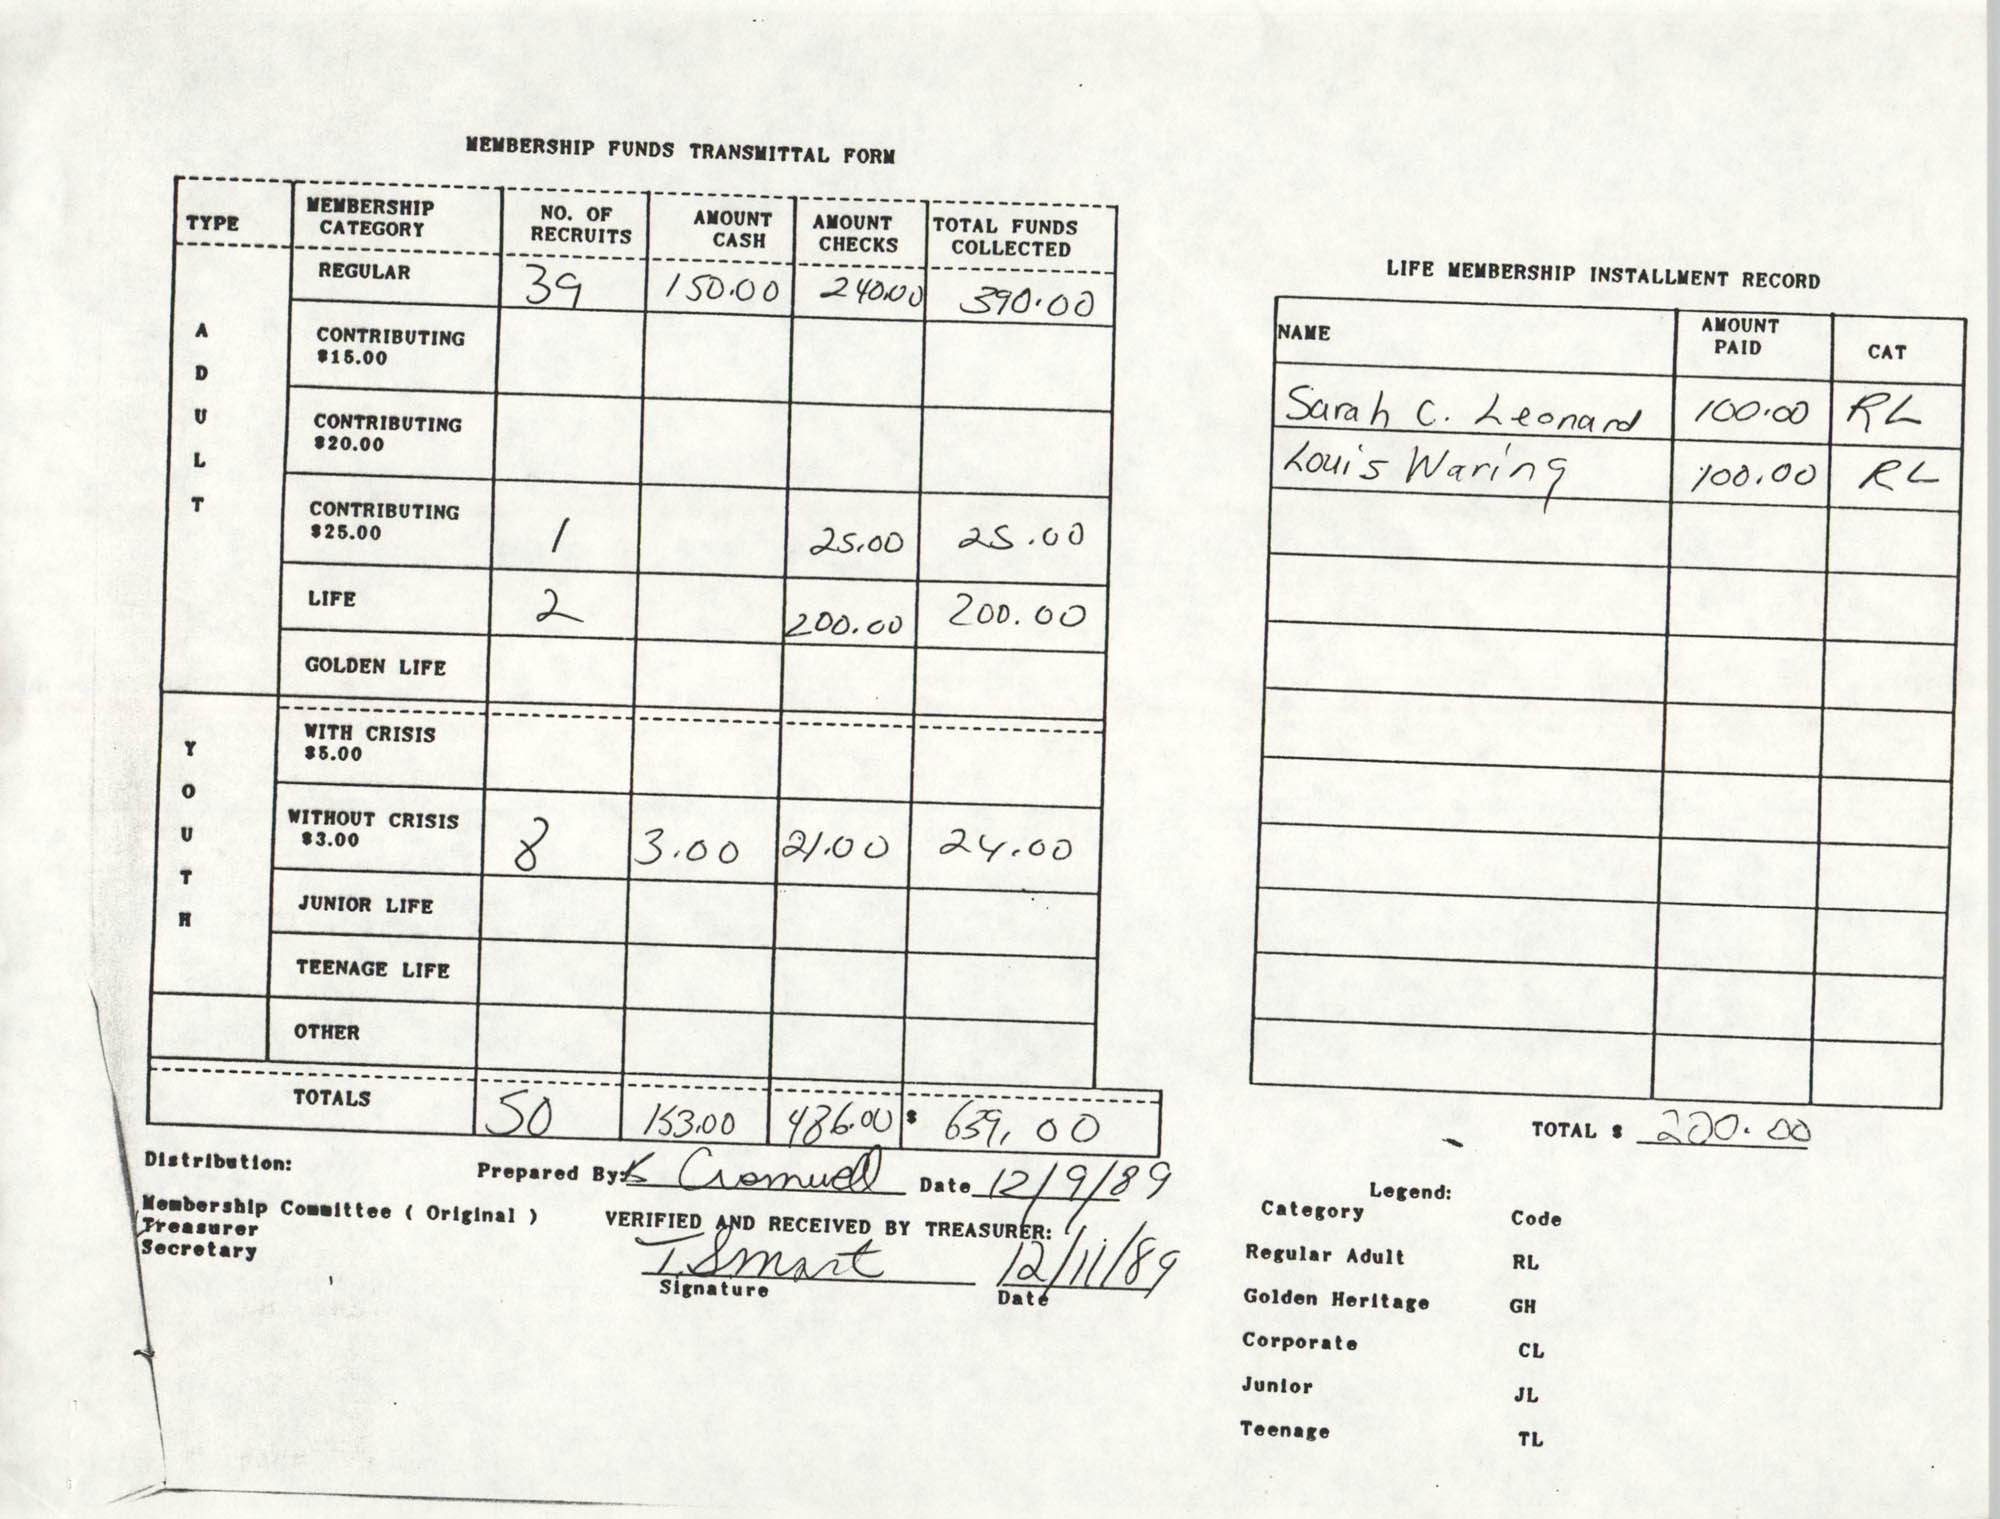 Charleston Branch of the NAACP Funds Transmittal Forms, December 1989, Page 2